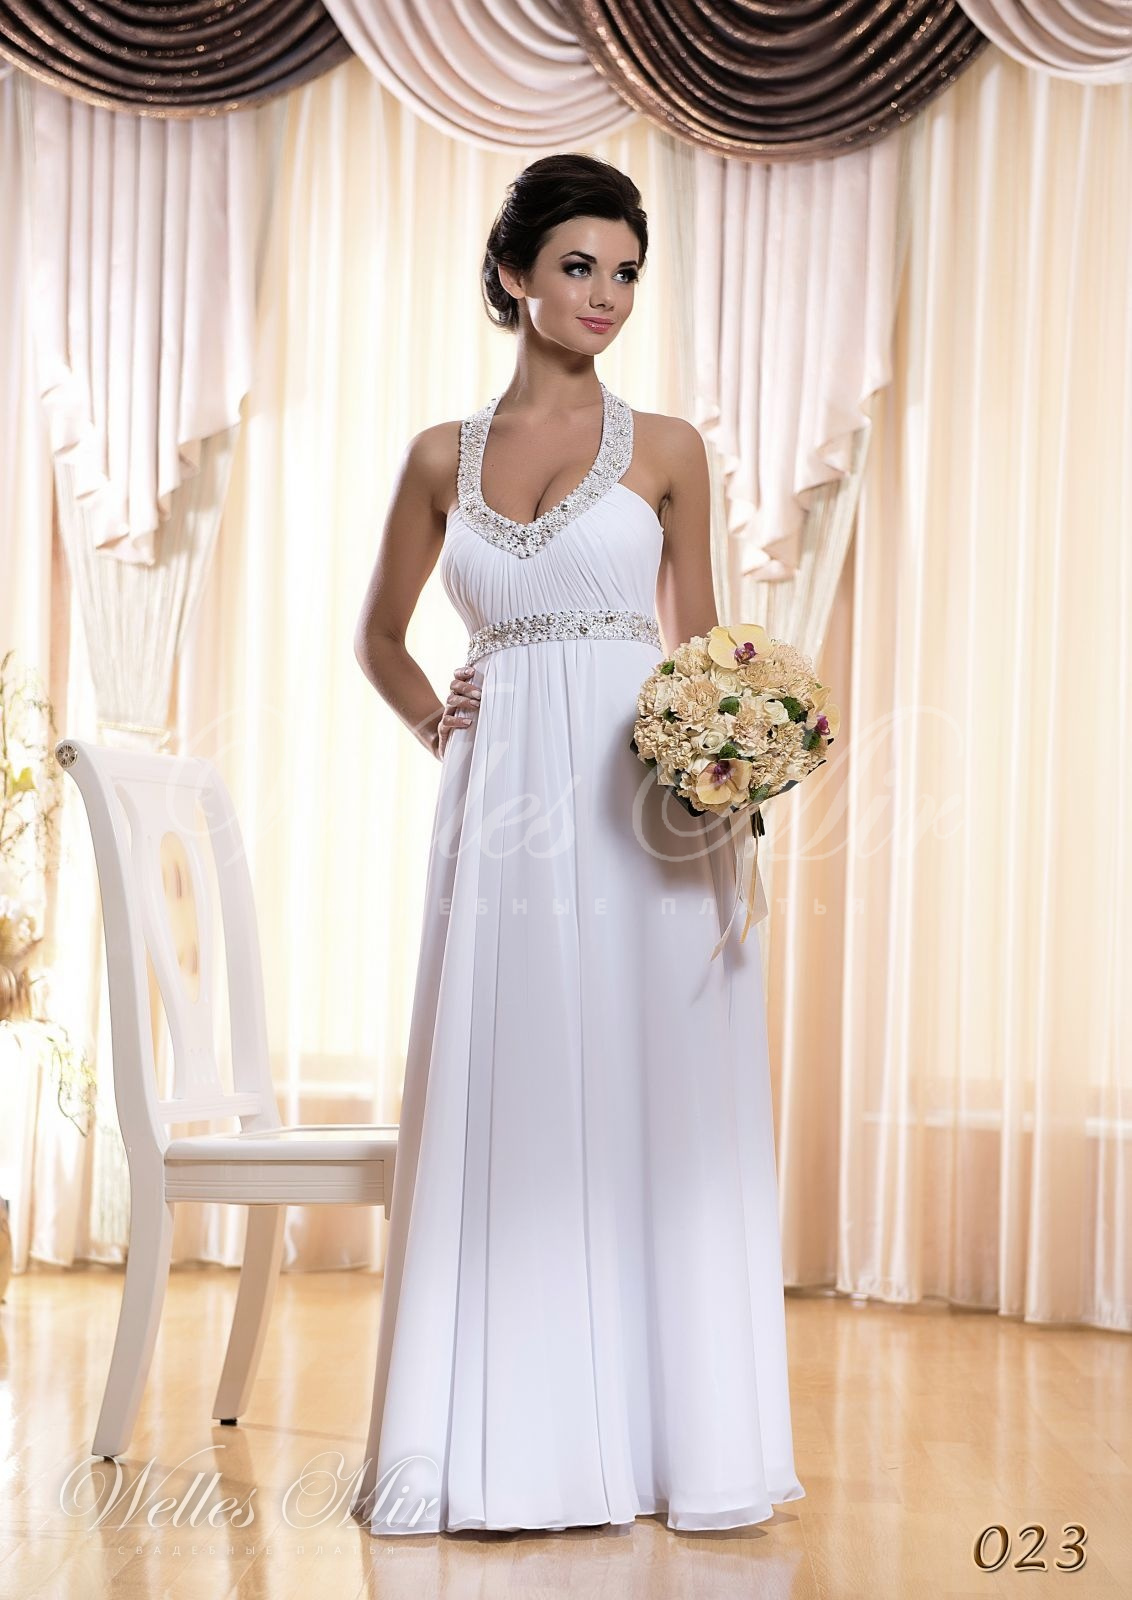 Wedding dresses 023